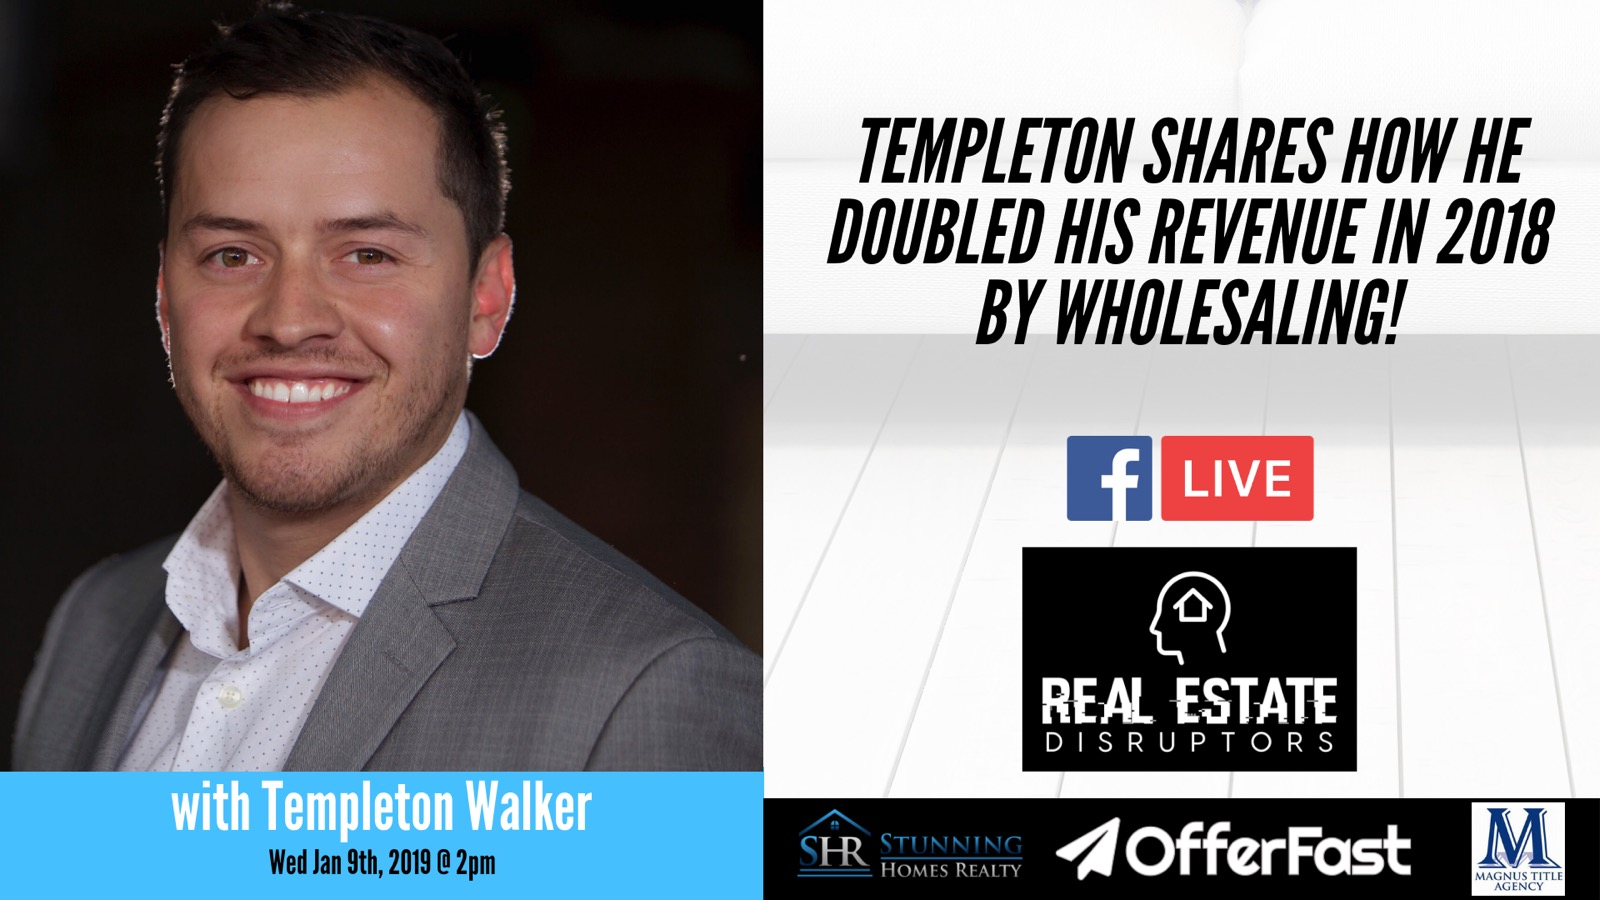 Interview with Templeton Walker